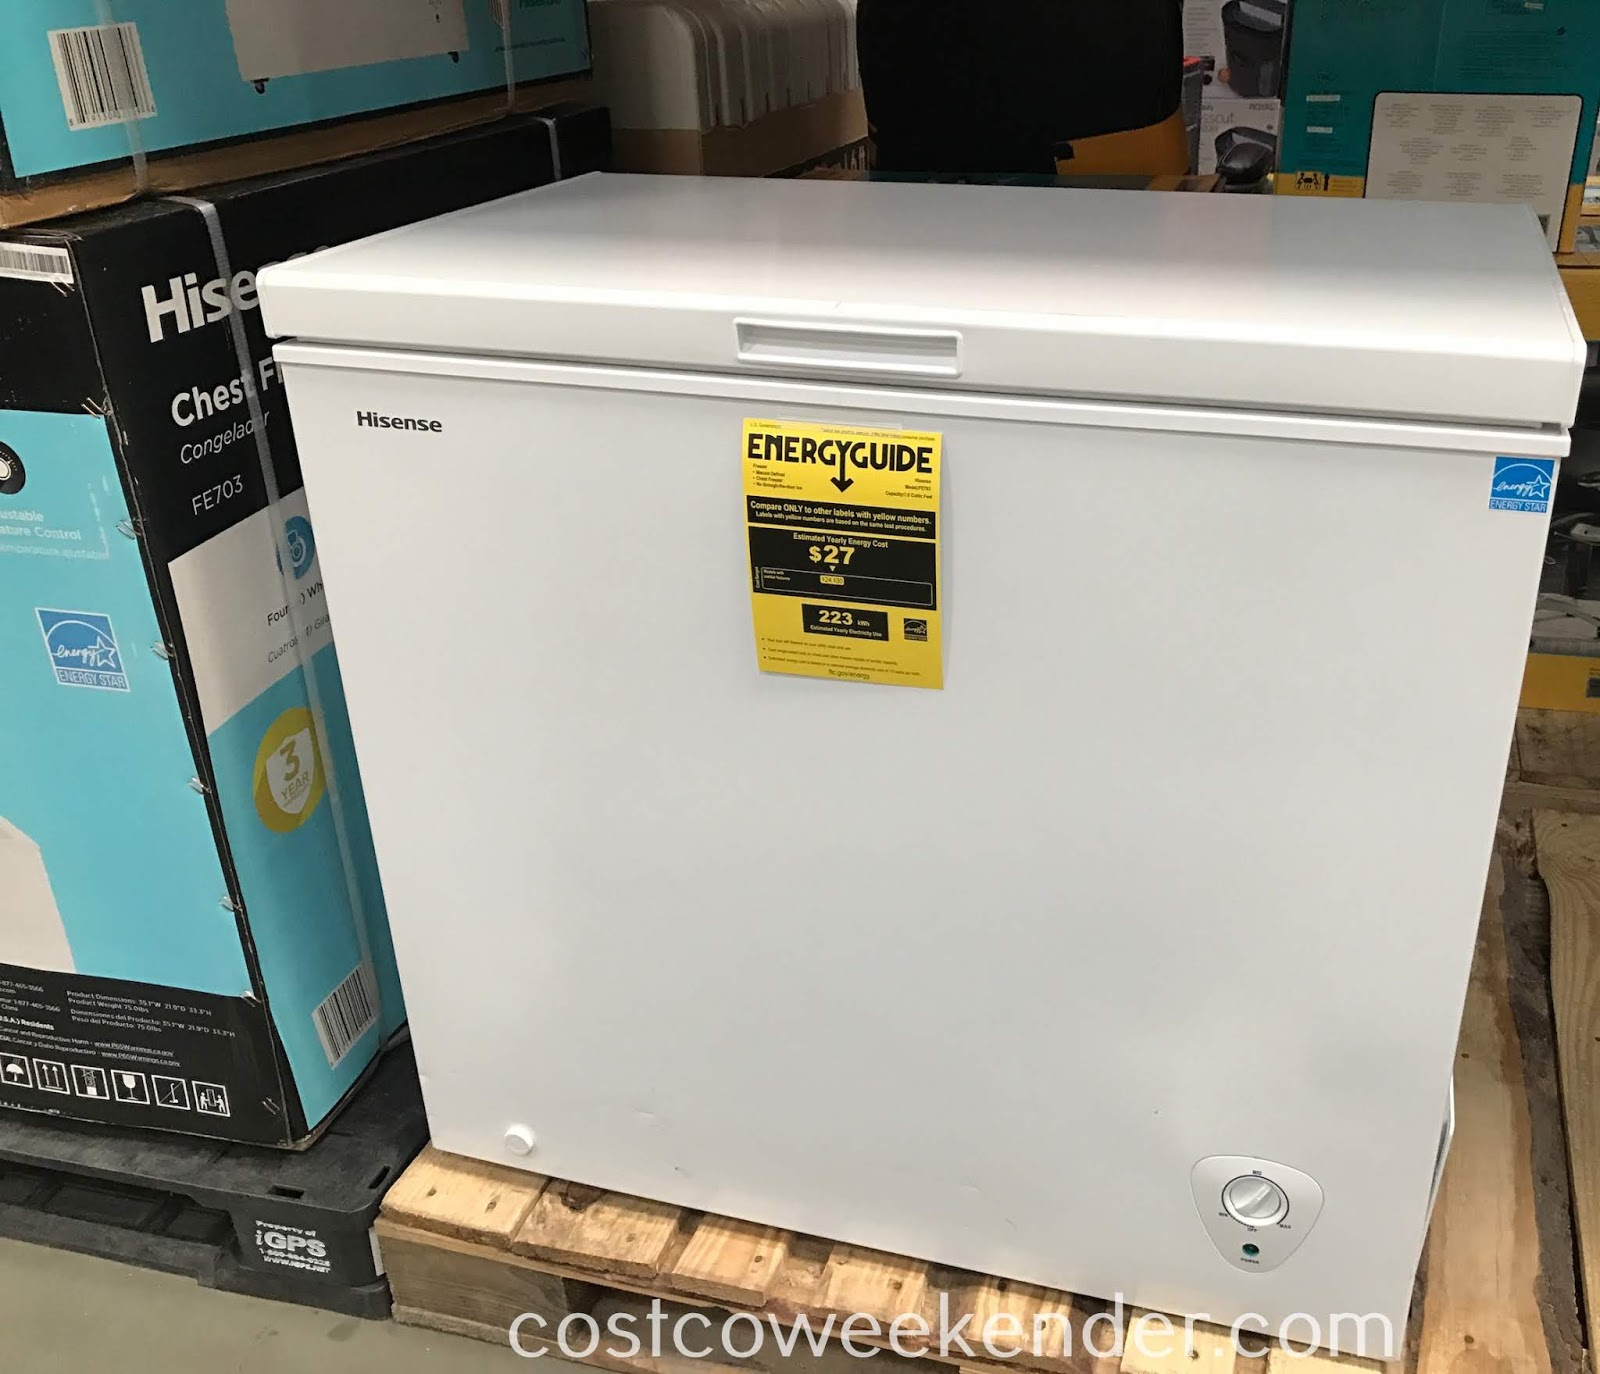 Get more freezer space with the Hisense Chest Freezer (FE703)